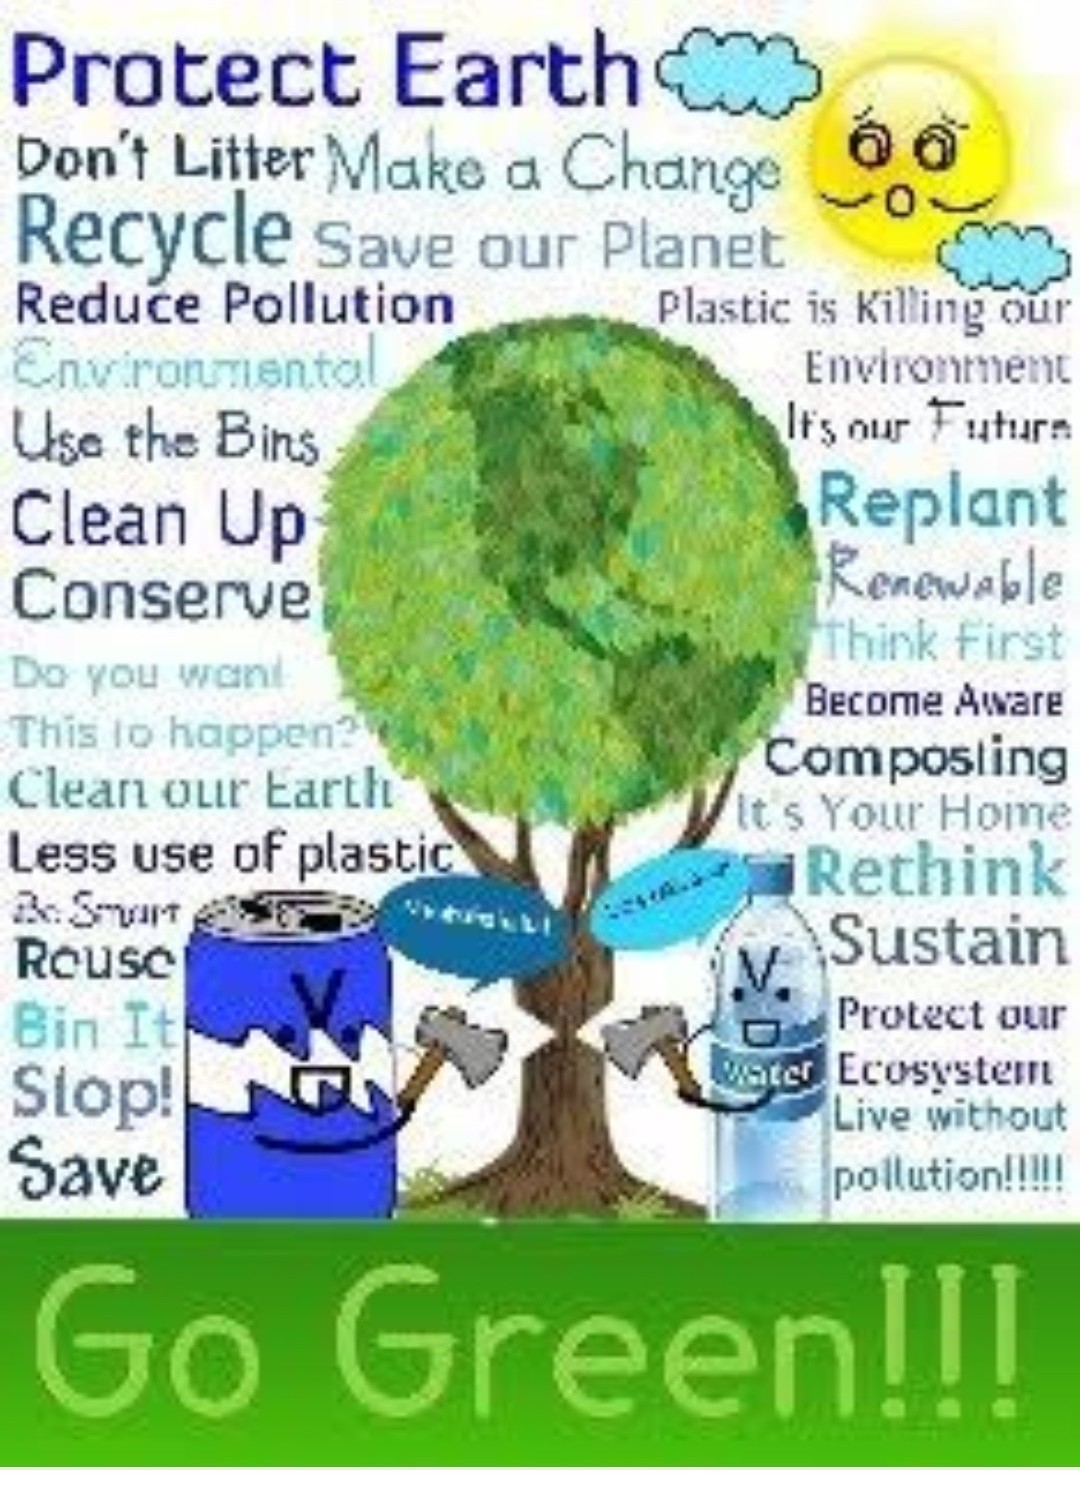 How To Reduse Pollution Make Posrer Of Reduce Pollution Brainly In